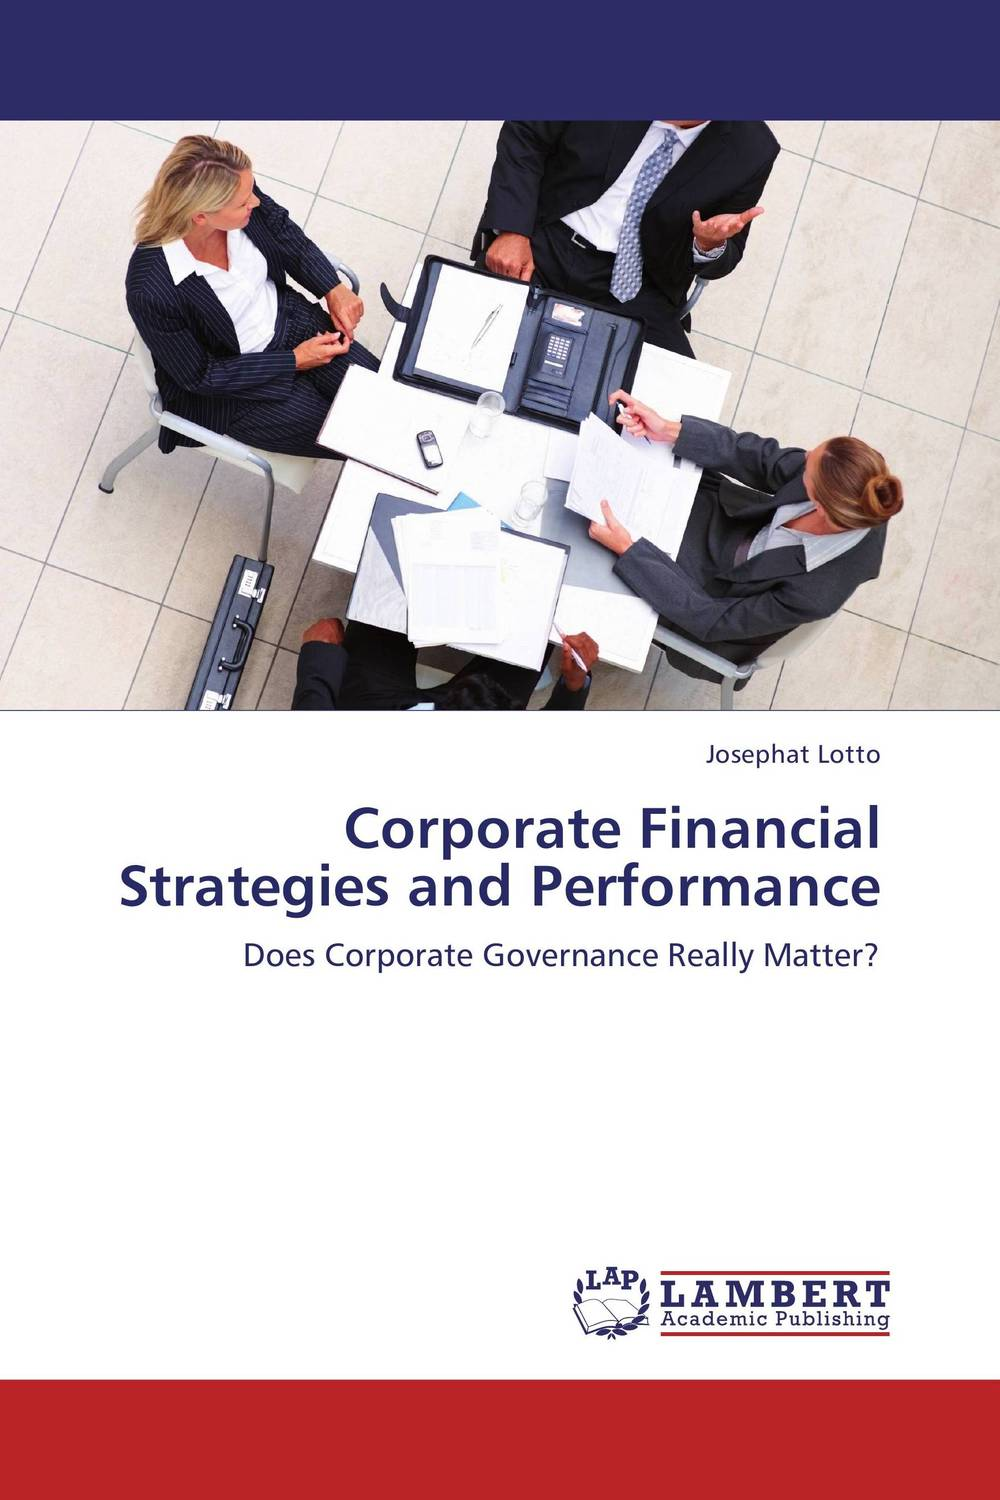 Corporate Financial Strategies and Performance gerald s martin capital structure and corporate financing decisions theory evidence and practice